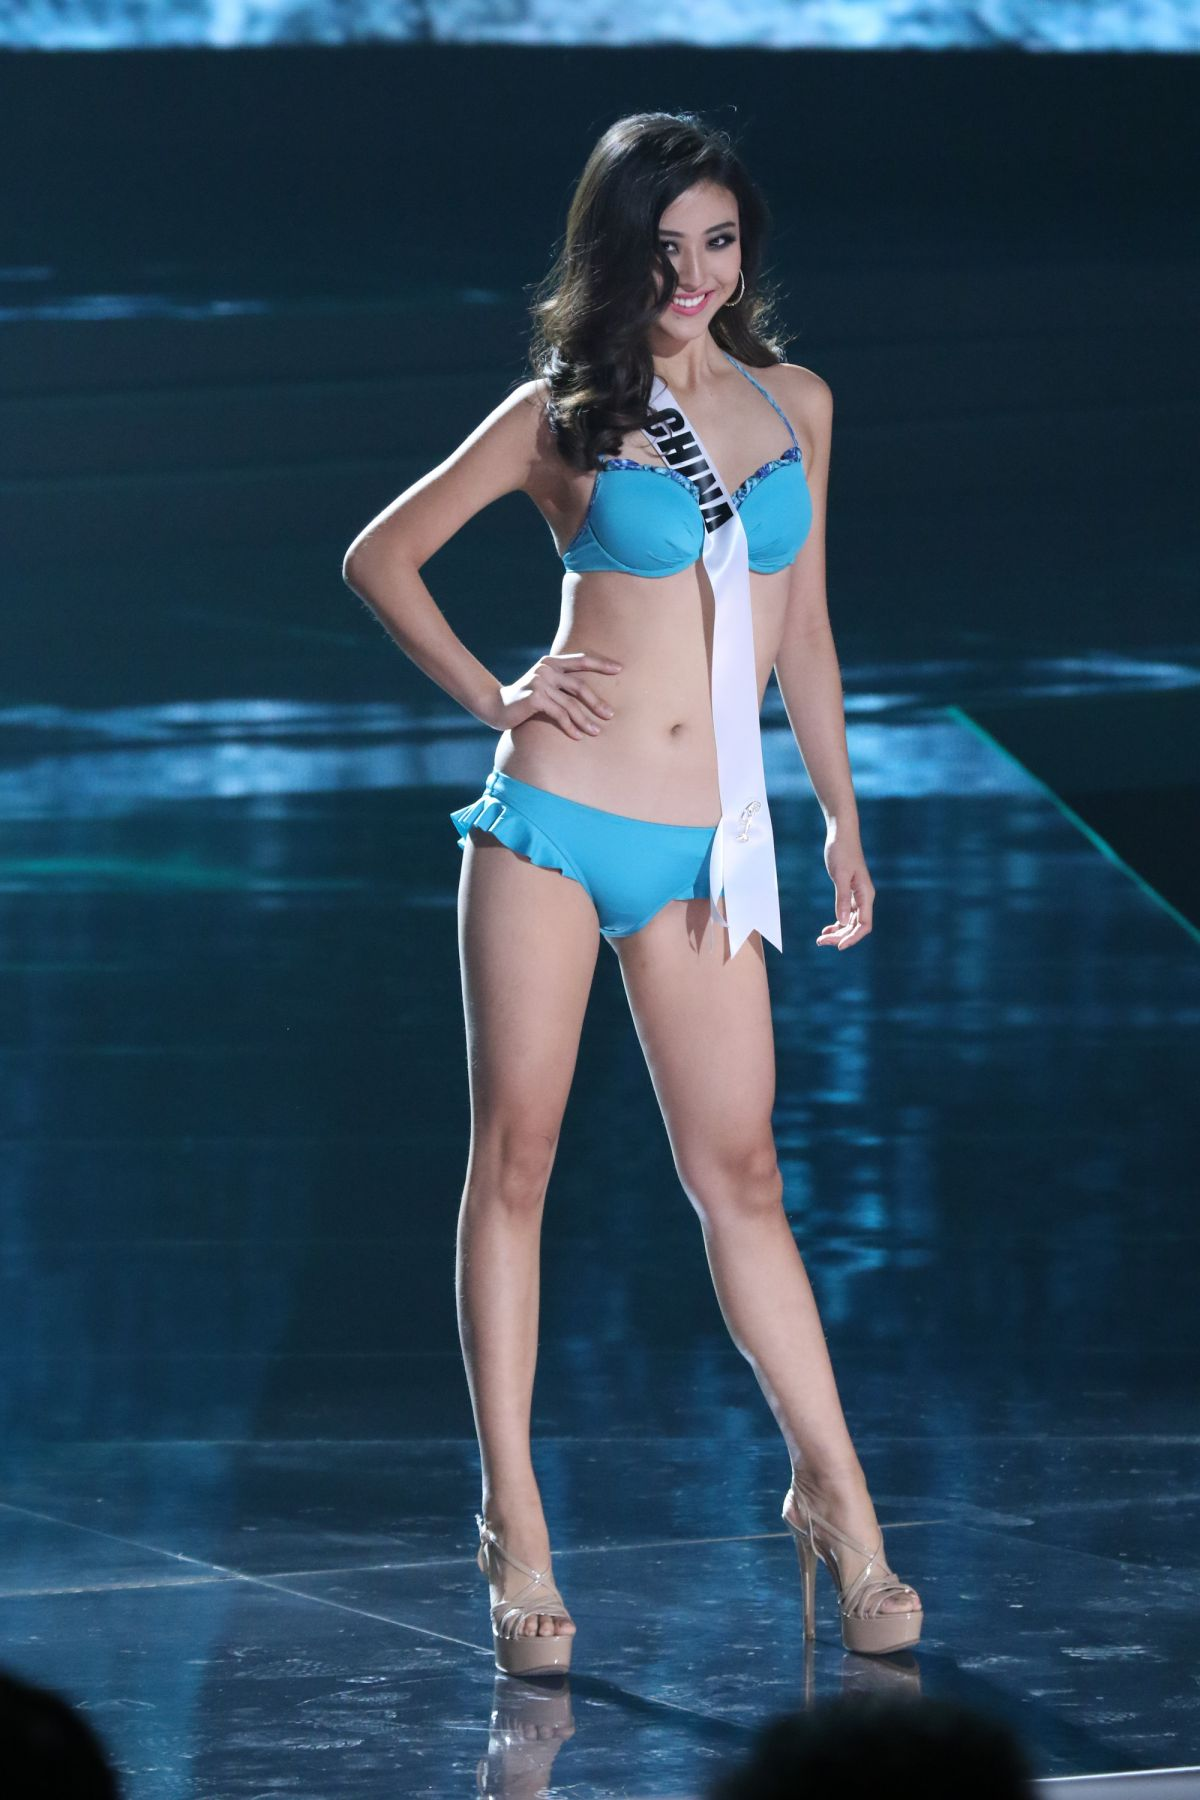 YUNG FANG XUE - Miss Universe 2015 Preliminary Round 12/16/2015